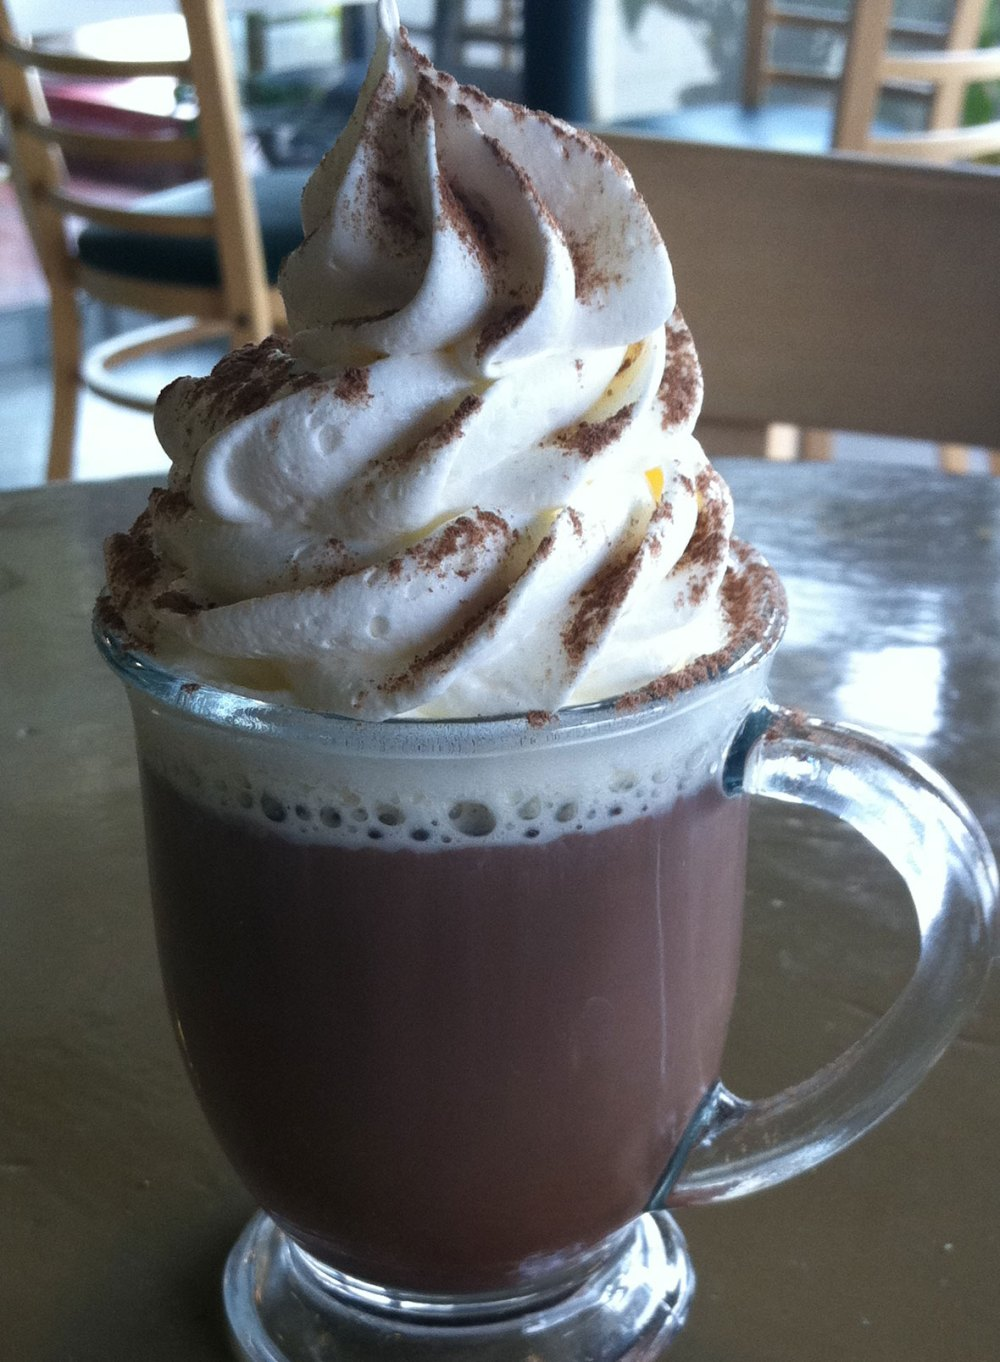 Mocha at The Meeting Place on Market